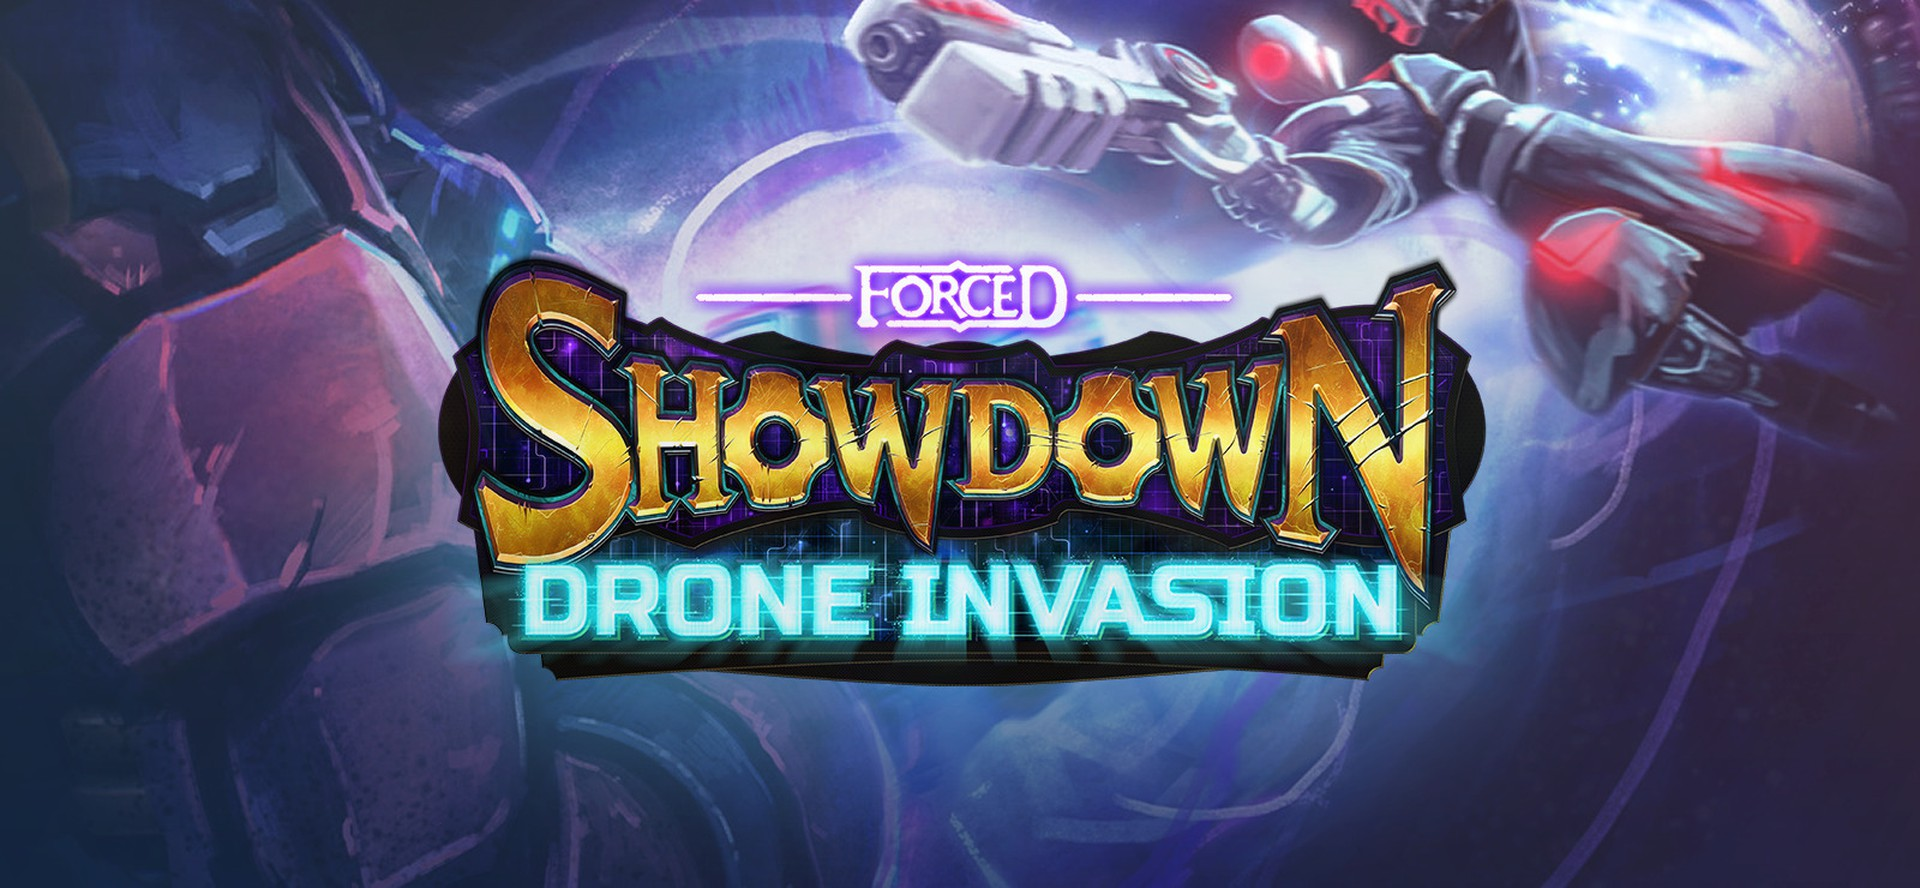 Forced Showdown - Drone Invasion